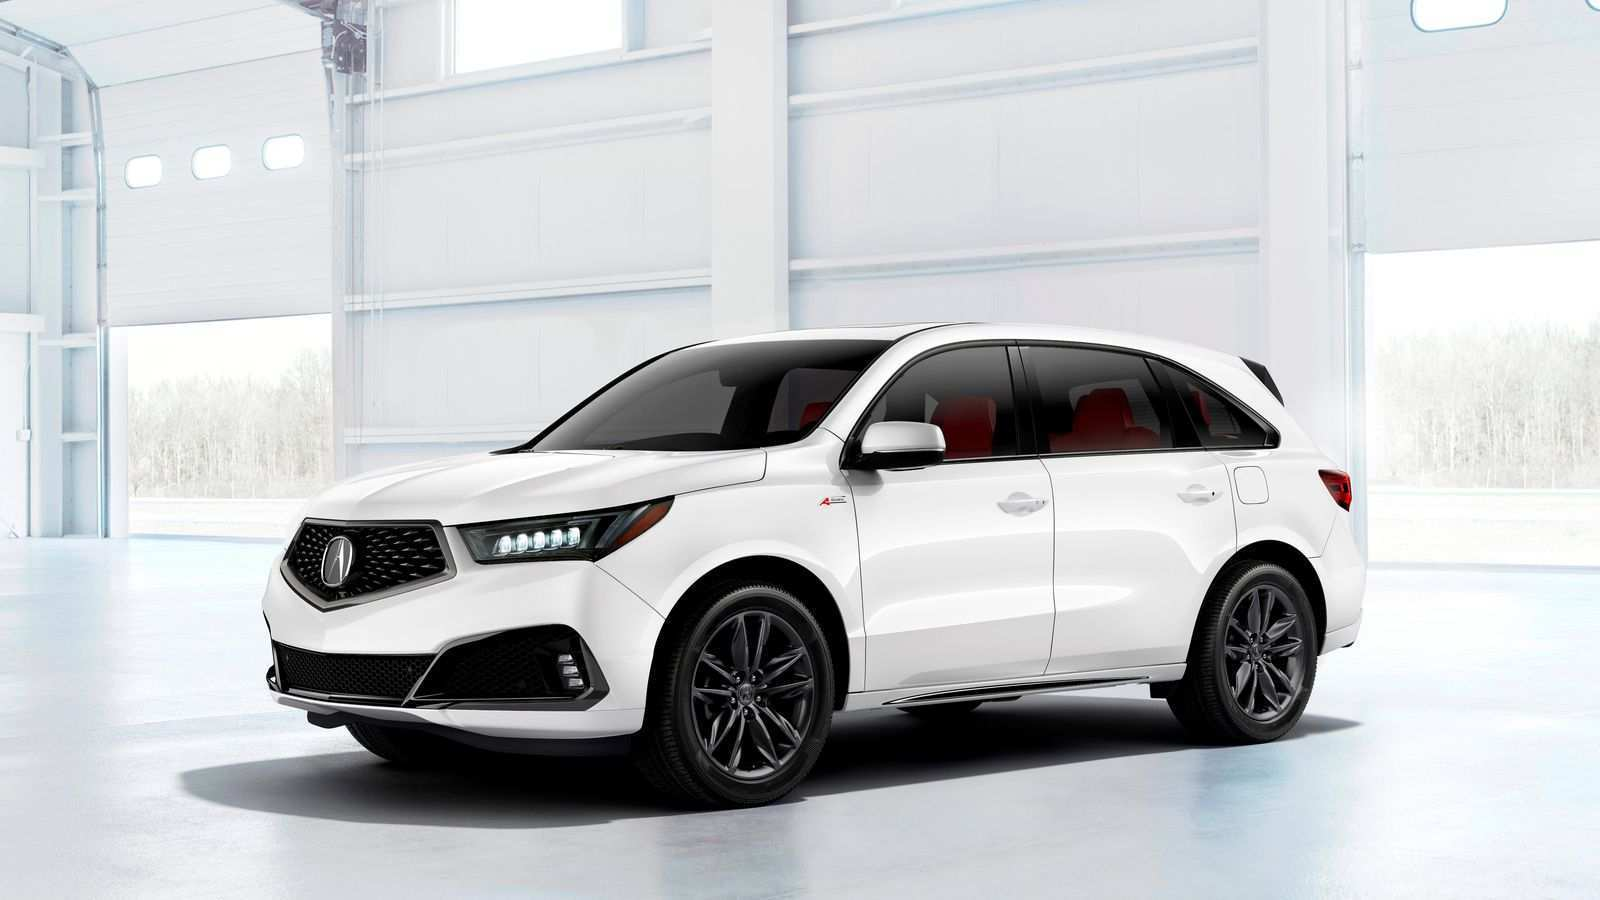 59 All New 2019 Acura Suv Concept by 2019 Acura Suv